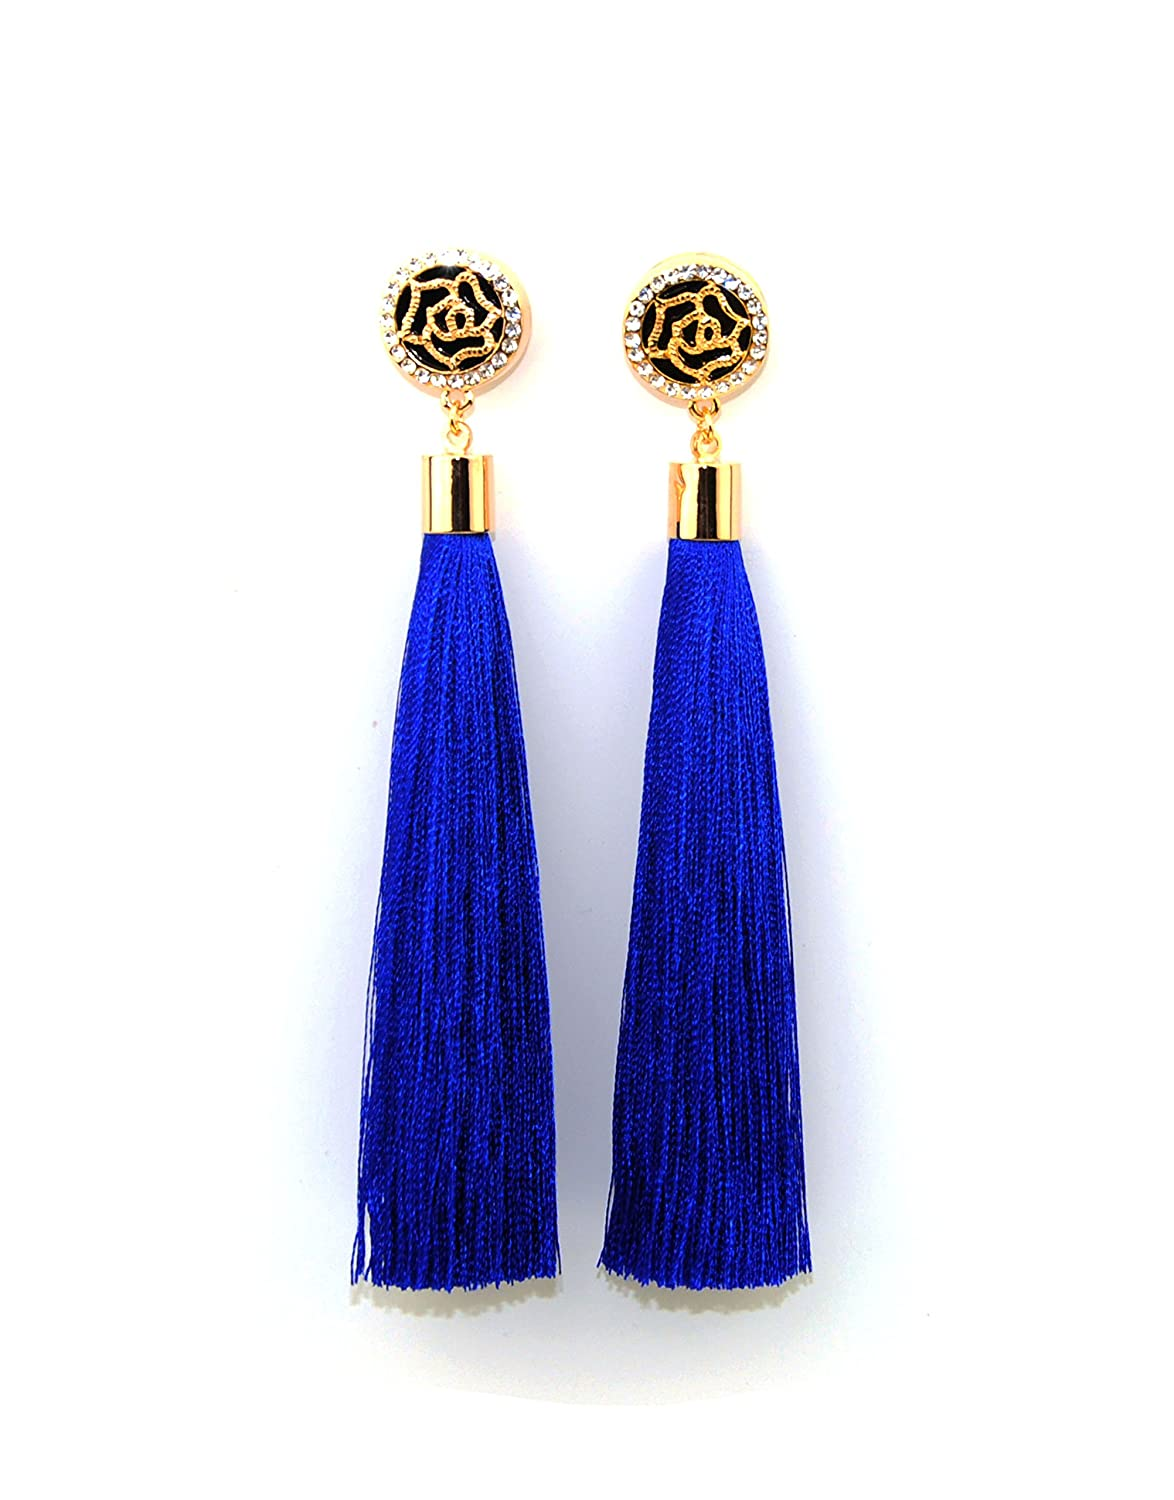 Royal Blue Tassel Earrings with Gold Rose and Diamante Feature UK kEvRbJGeXr